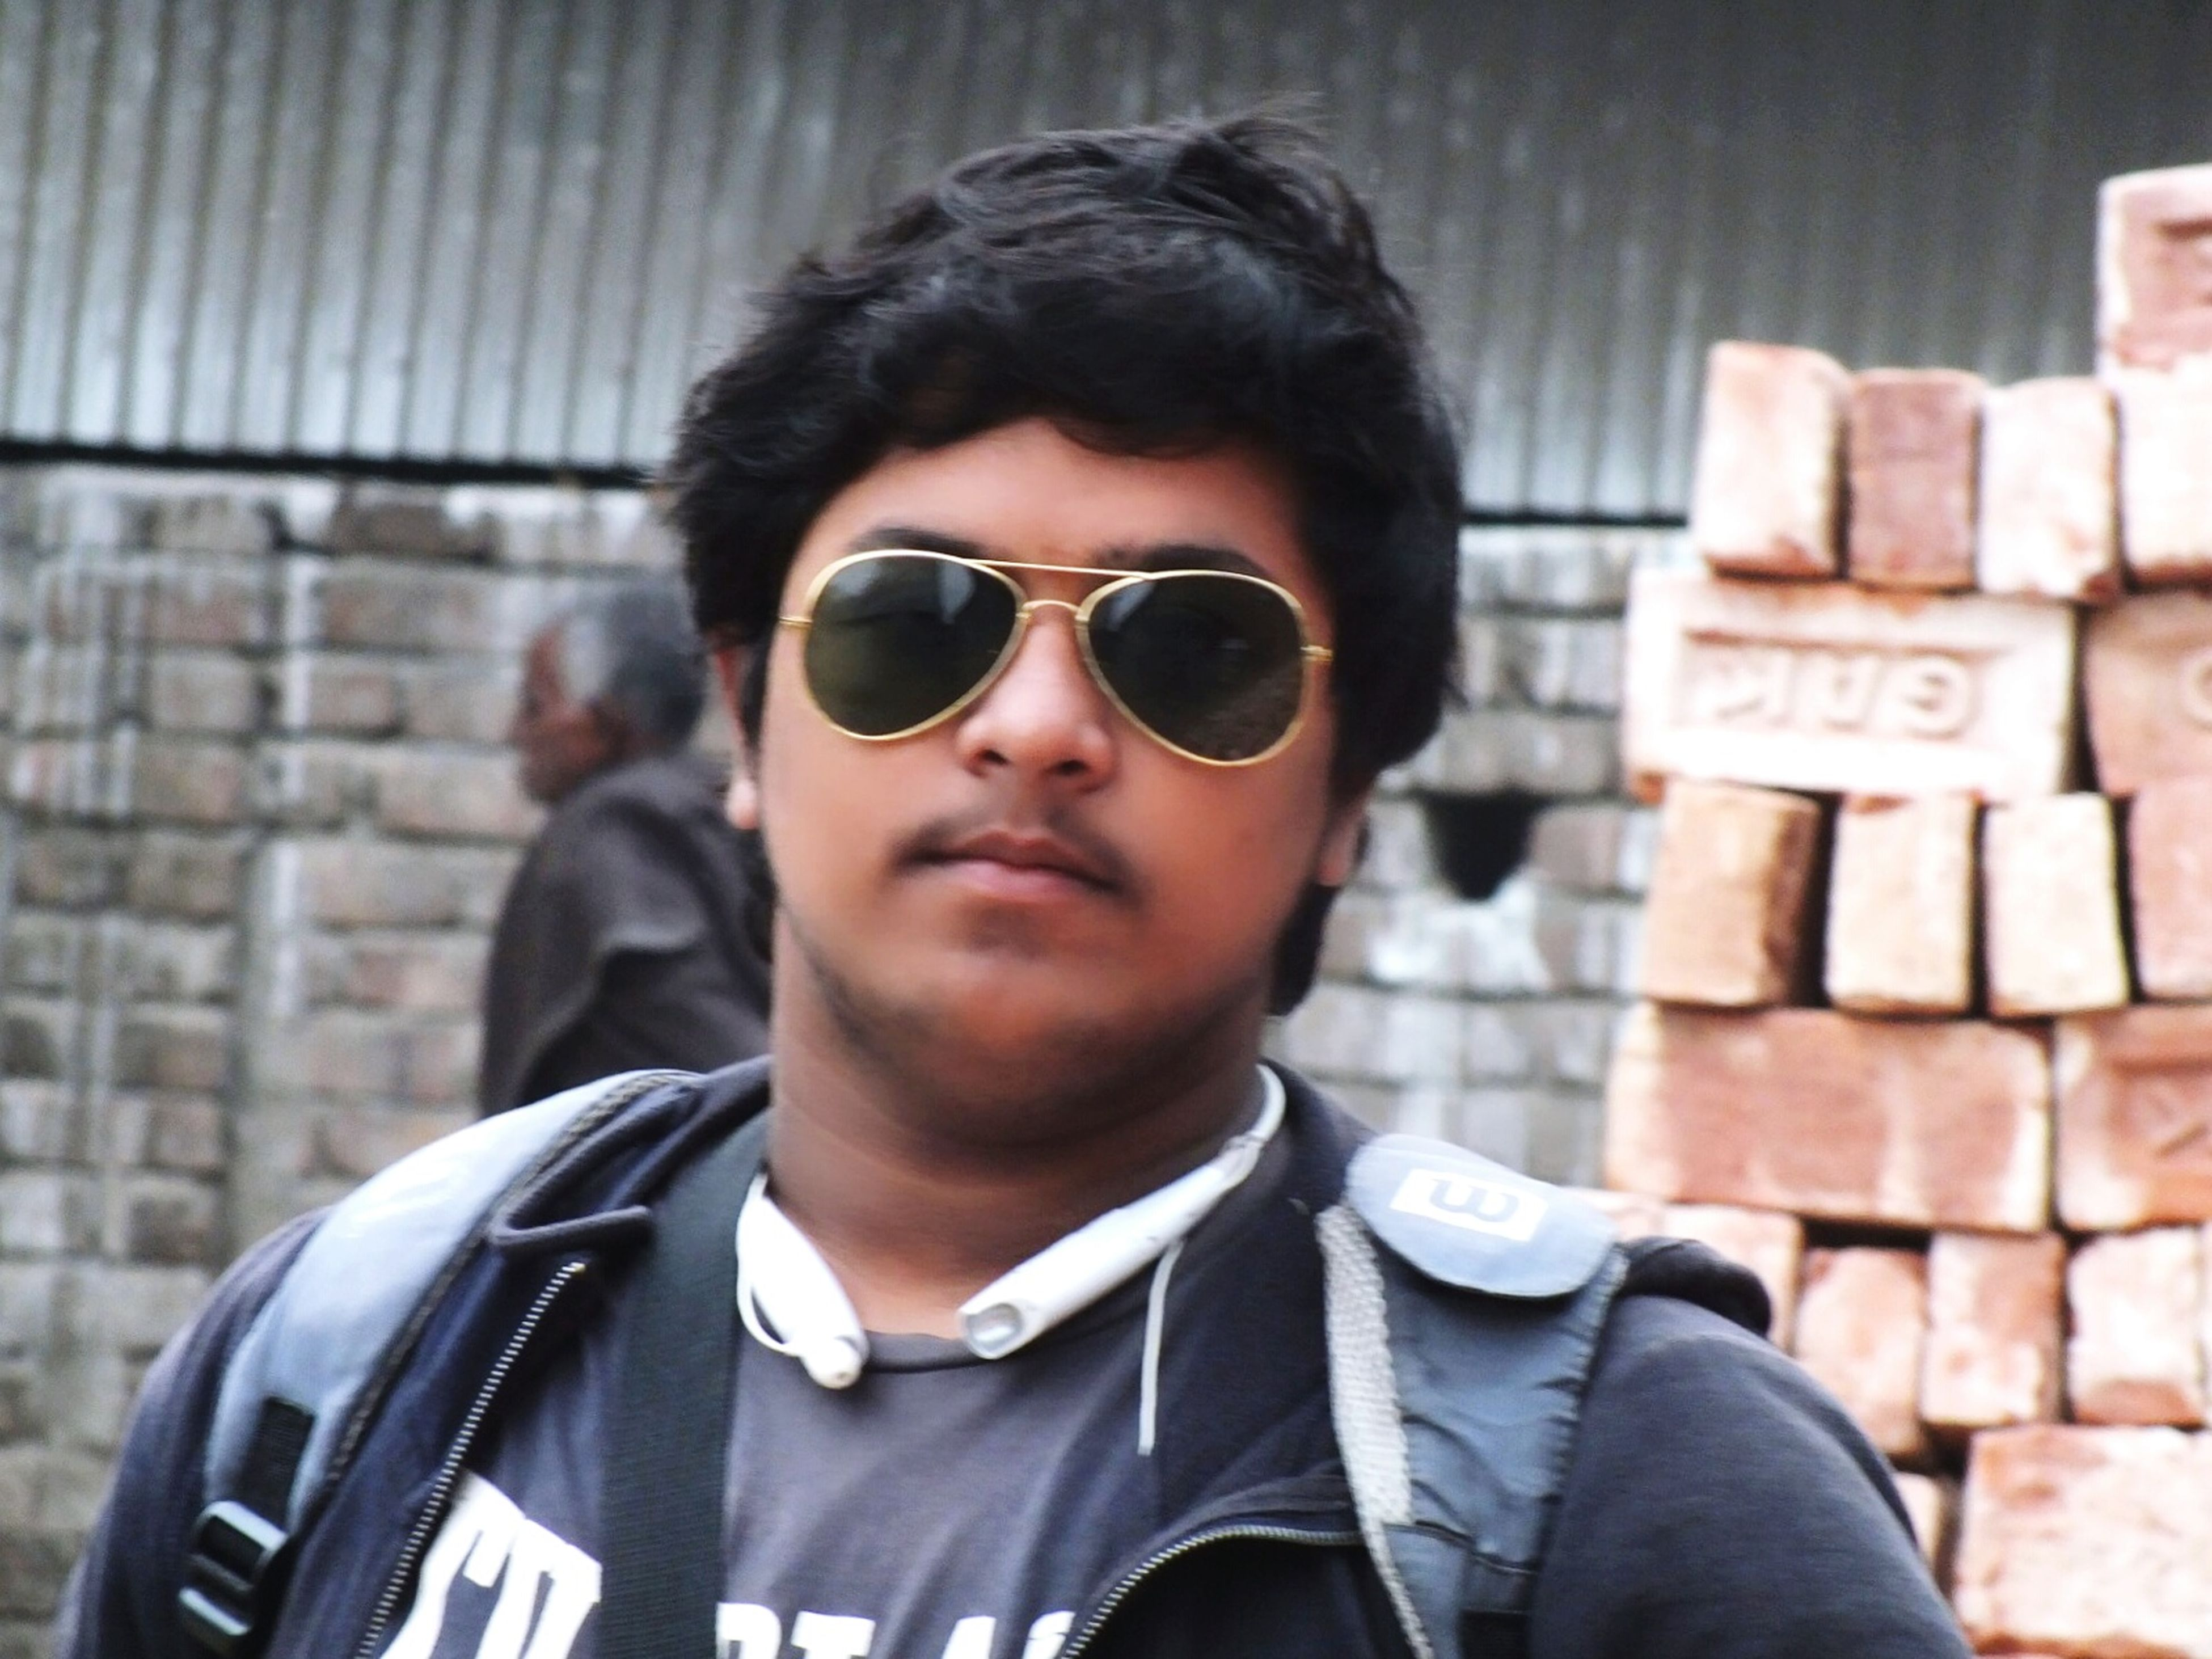 portrait, looking at camera, front view, lifestyles, young adult, person, sunglasses, headshot, casual clothing, young men, focus on foreground, leisure activity, close-up, smiling, head and shoulders, handsome, waist up, standing